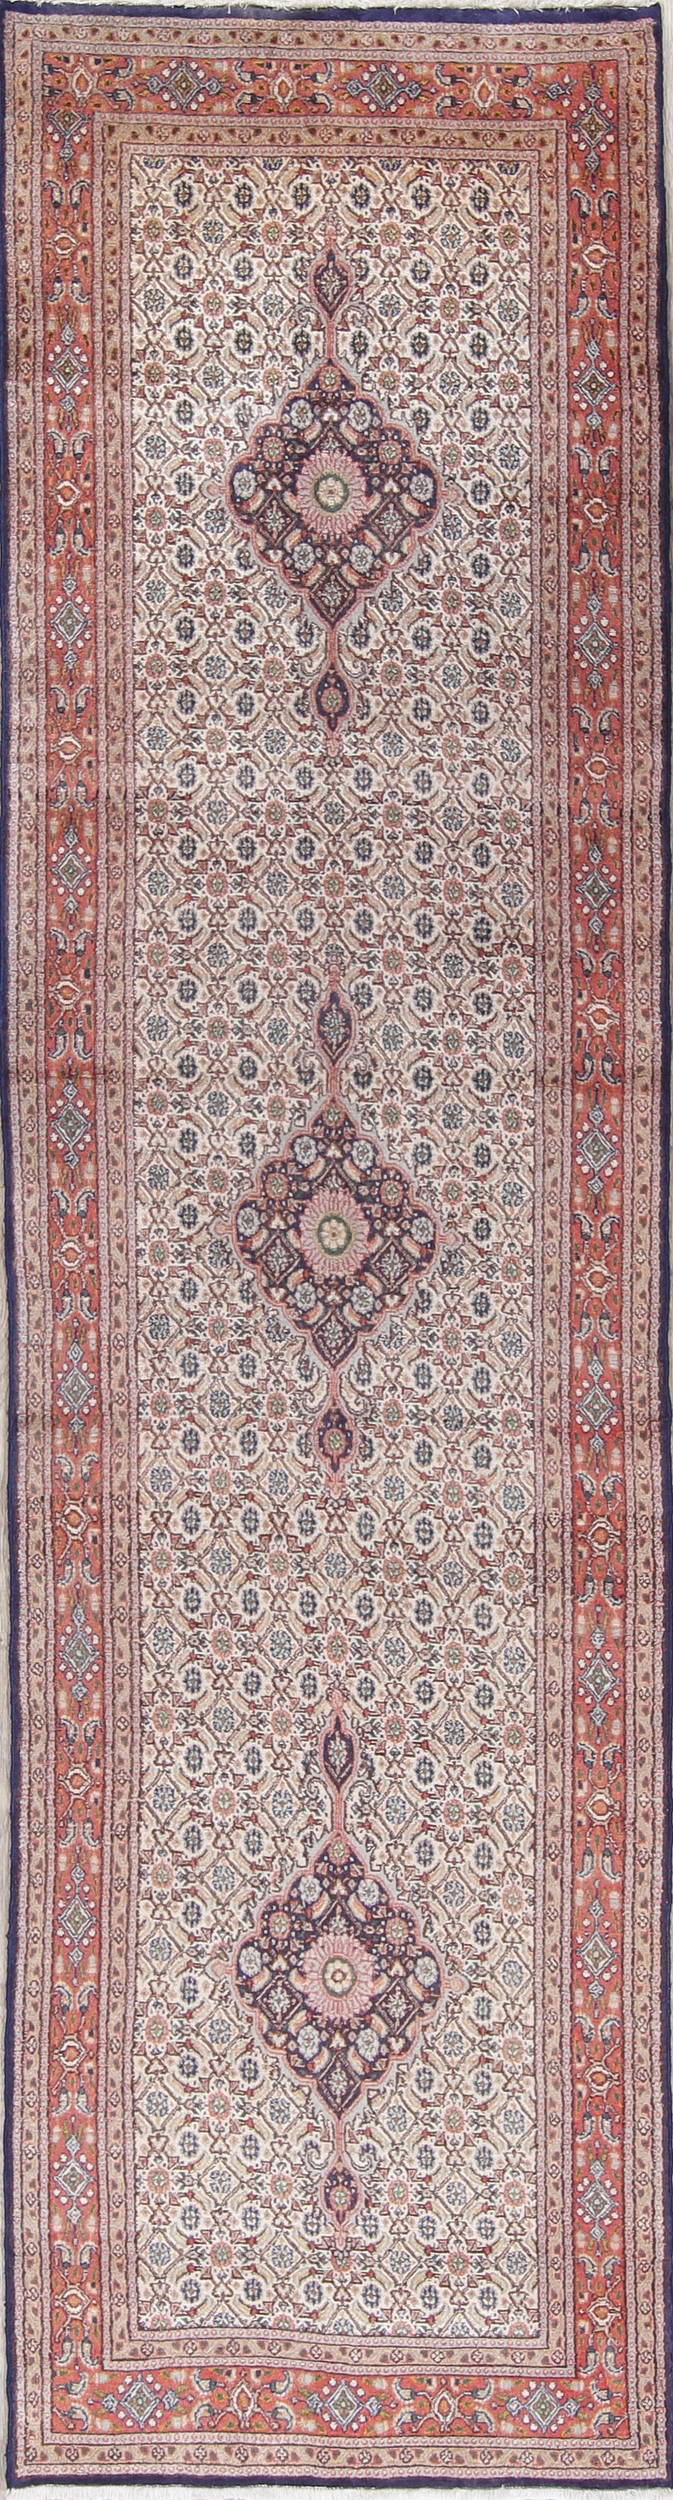 All-Over Ivory Bidjar Persian Hand-Knotted 3x9 Wool Runner Rug